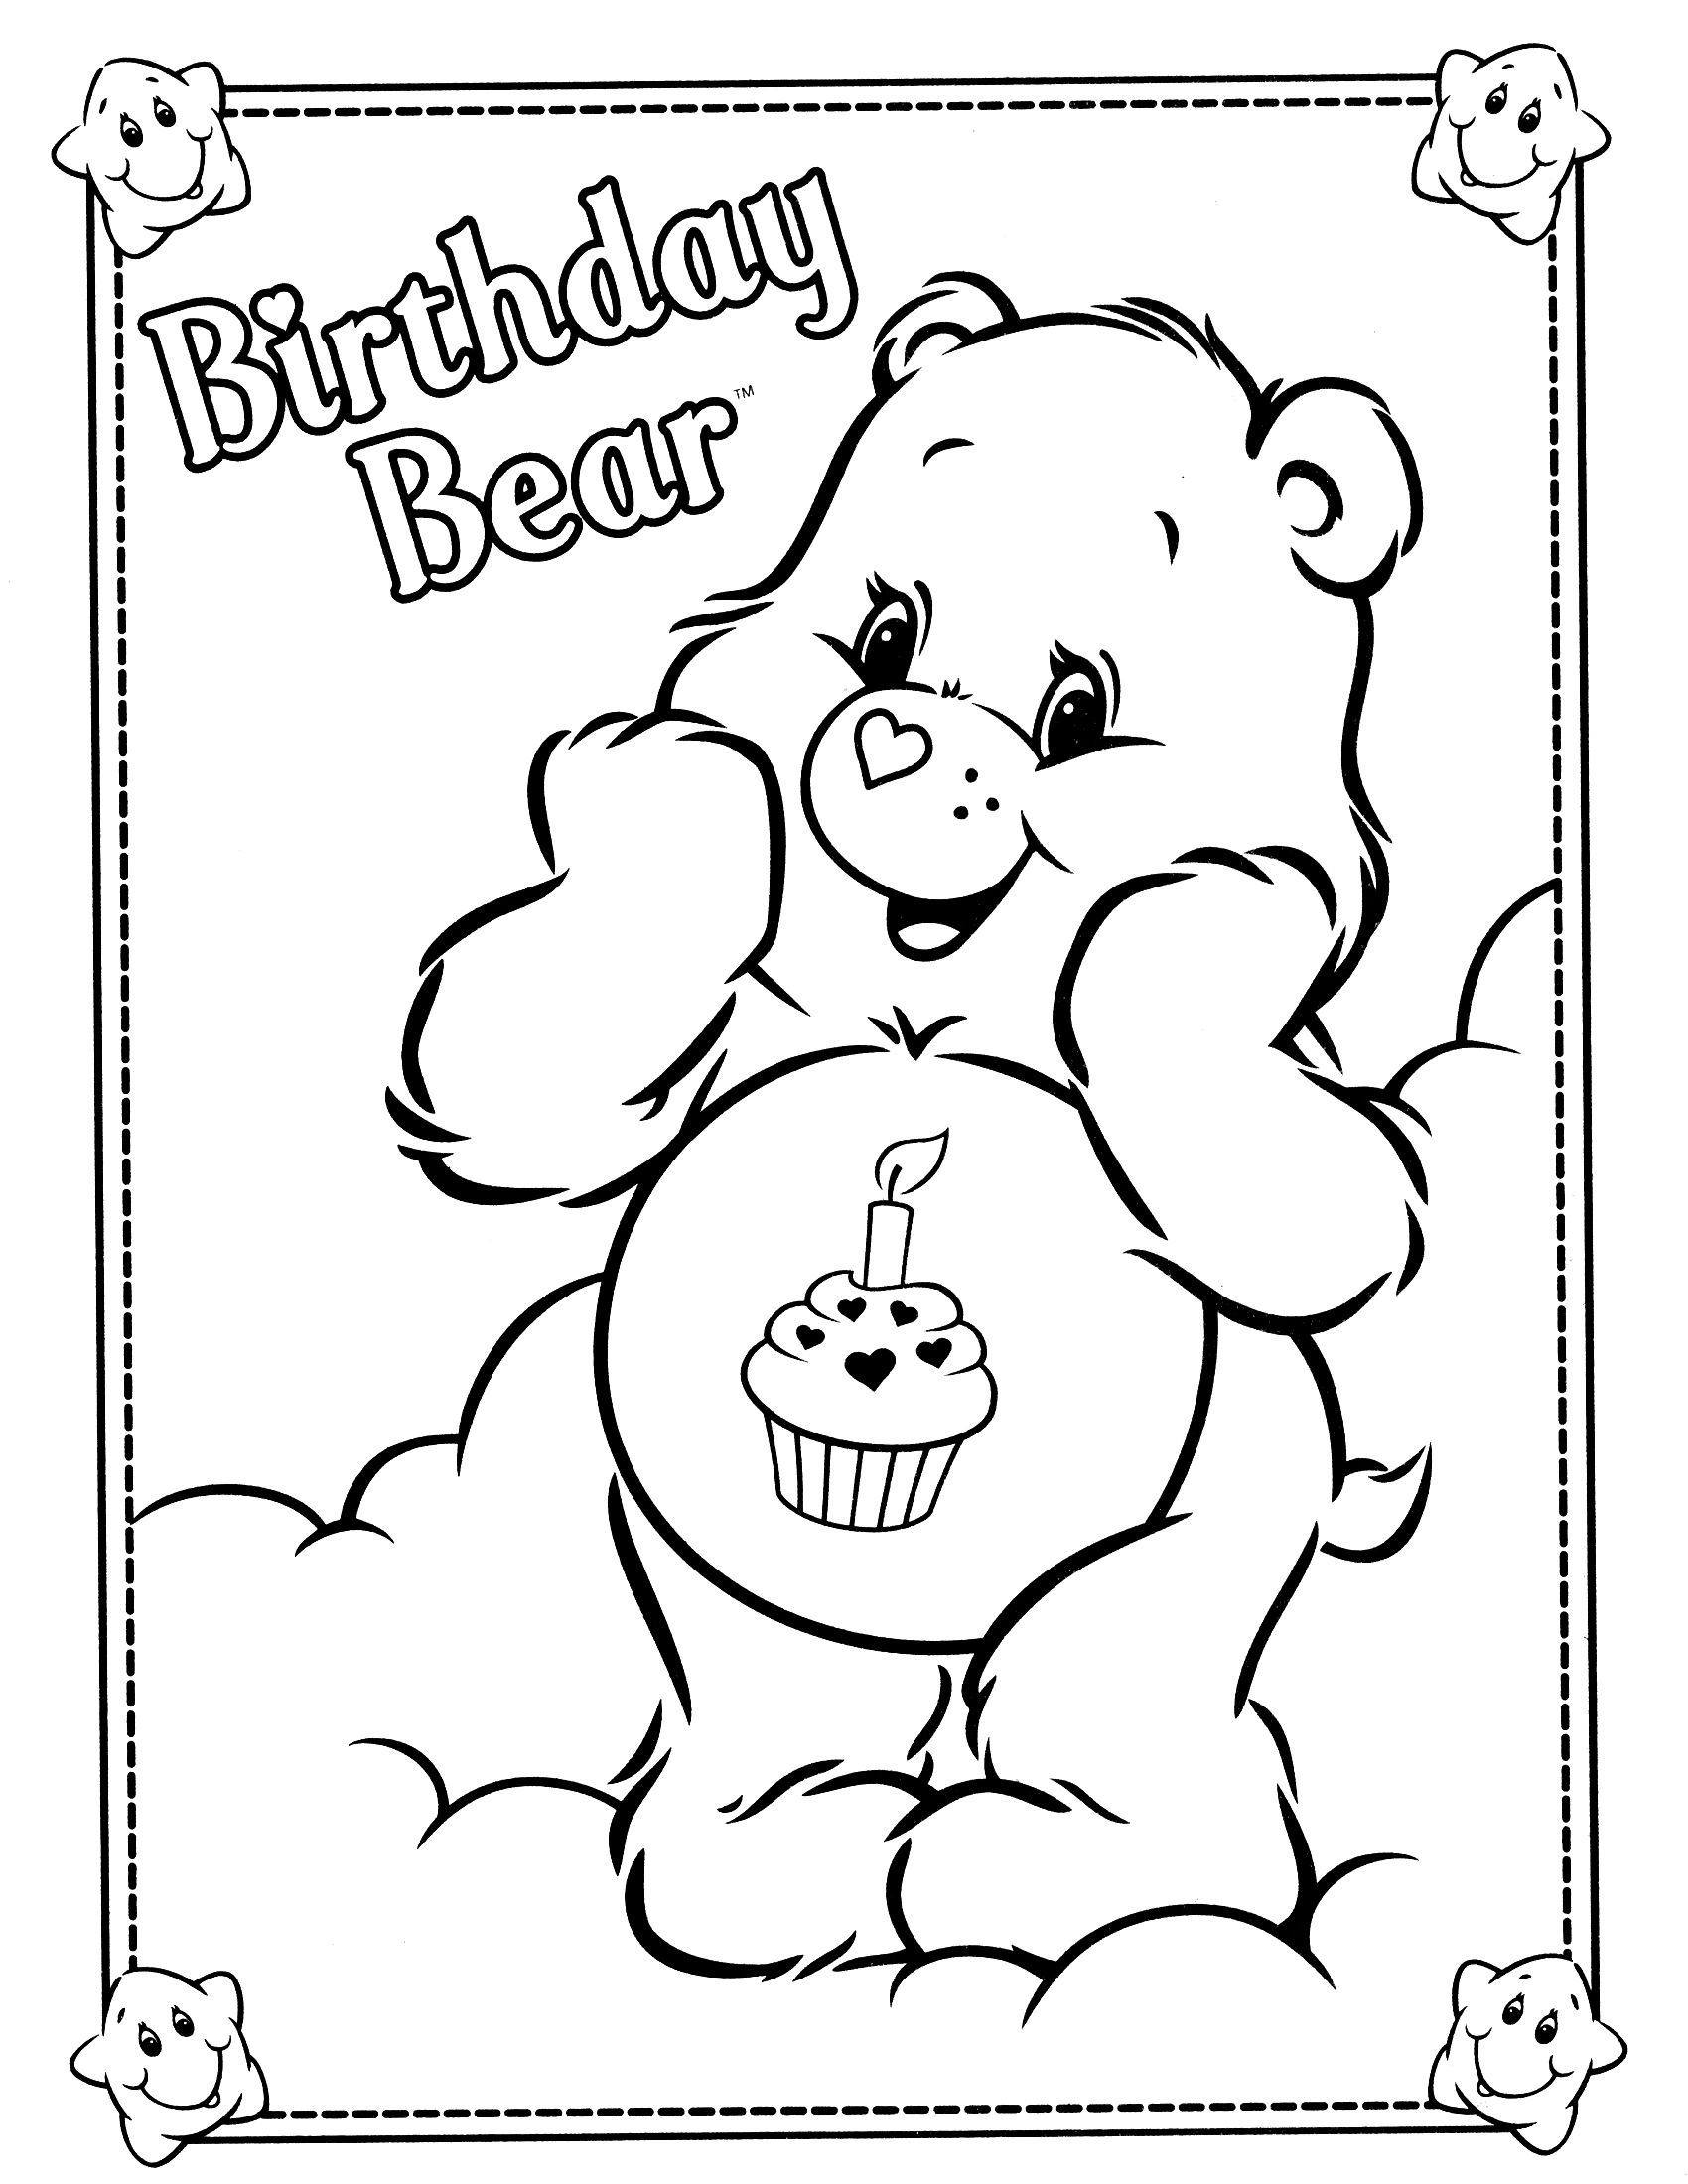 Custom Coloring Pages at Coloring Book Line Gallery Of Custom Coloring Pages Gallery